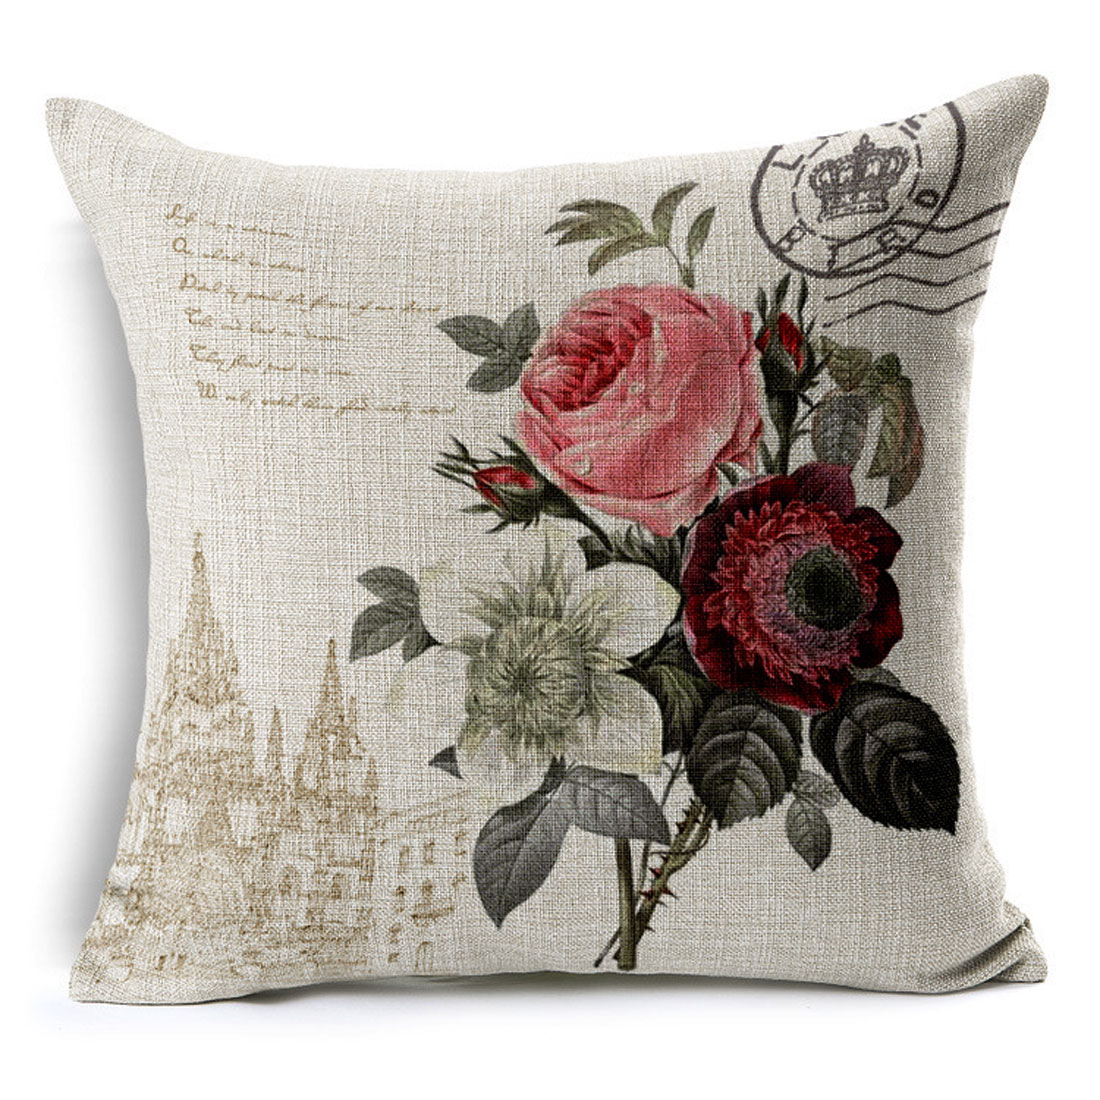 Household Sofa Couch Cotton Linen Rose Pattern Waist Throw Cushion Cover Pillow Case